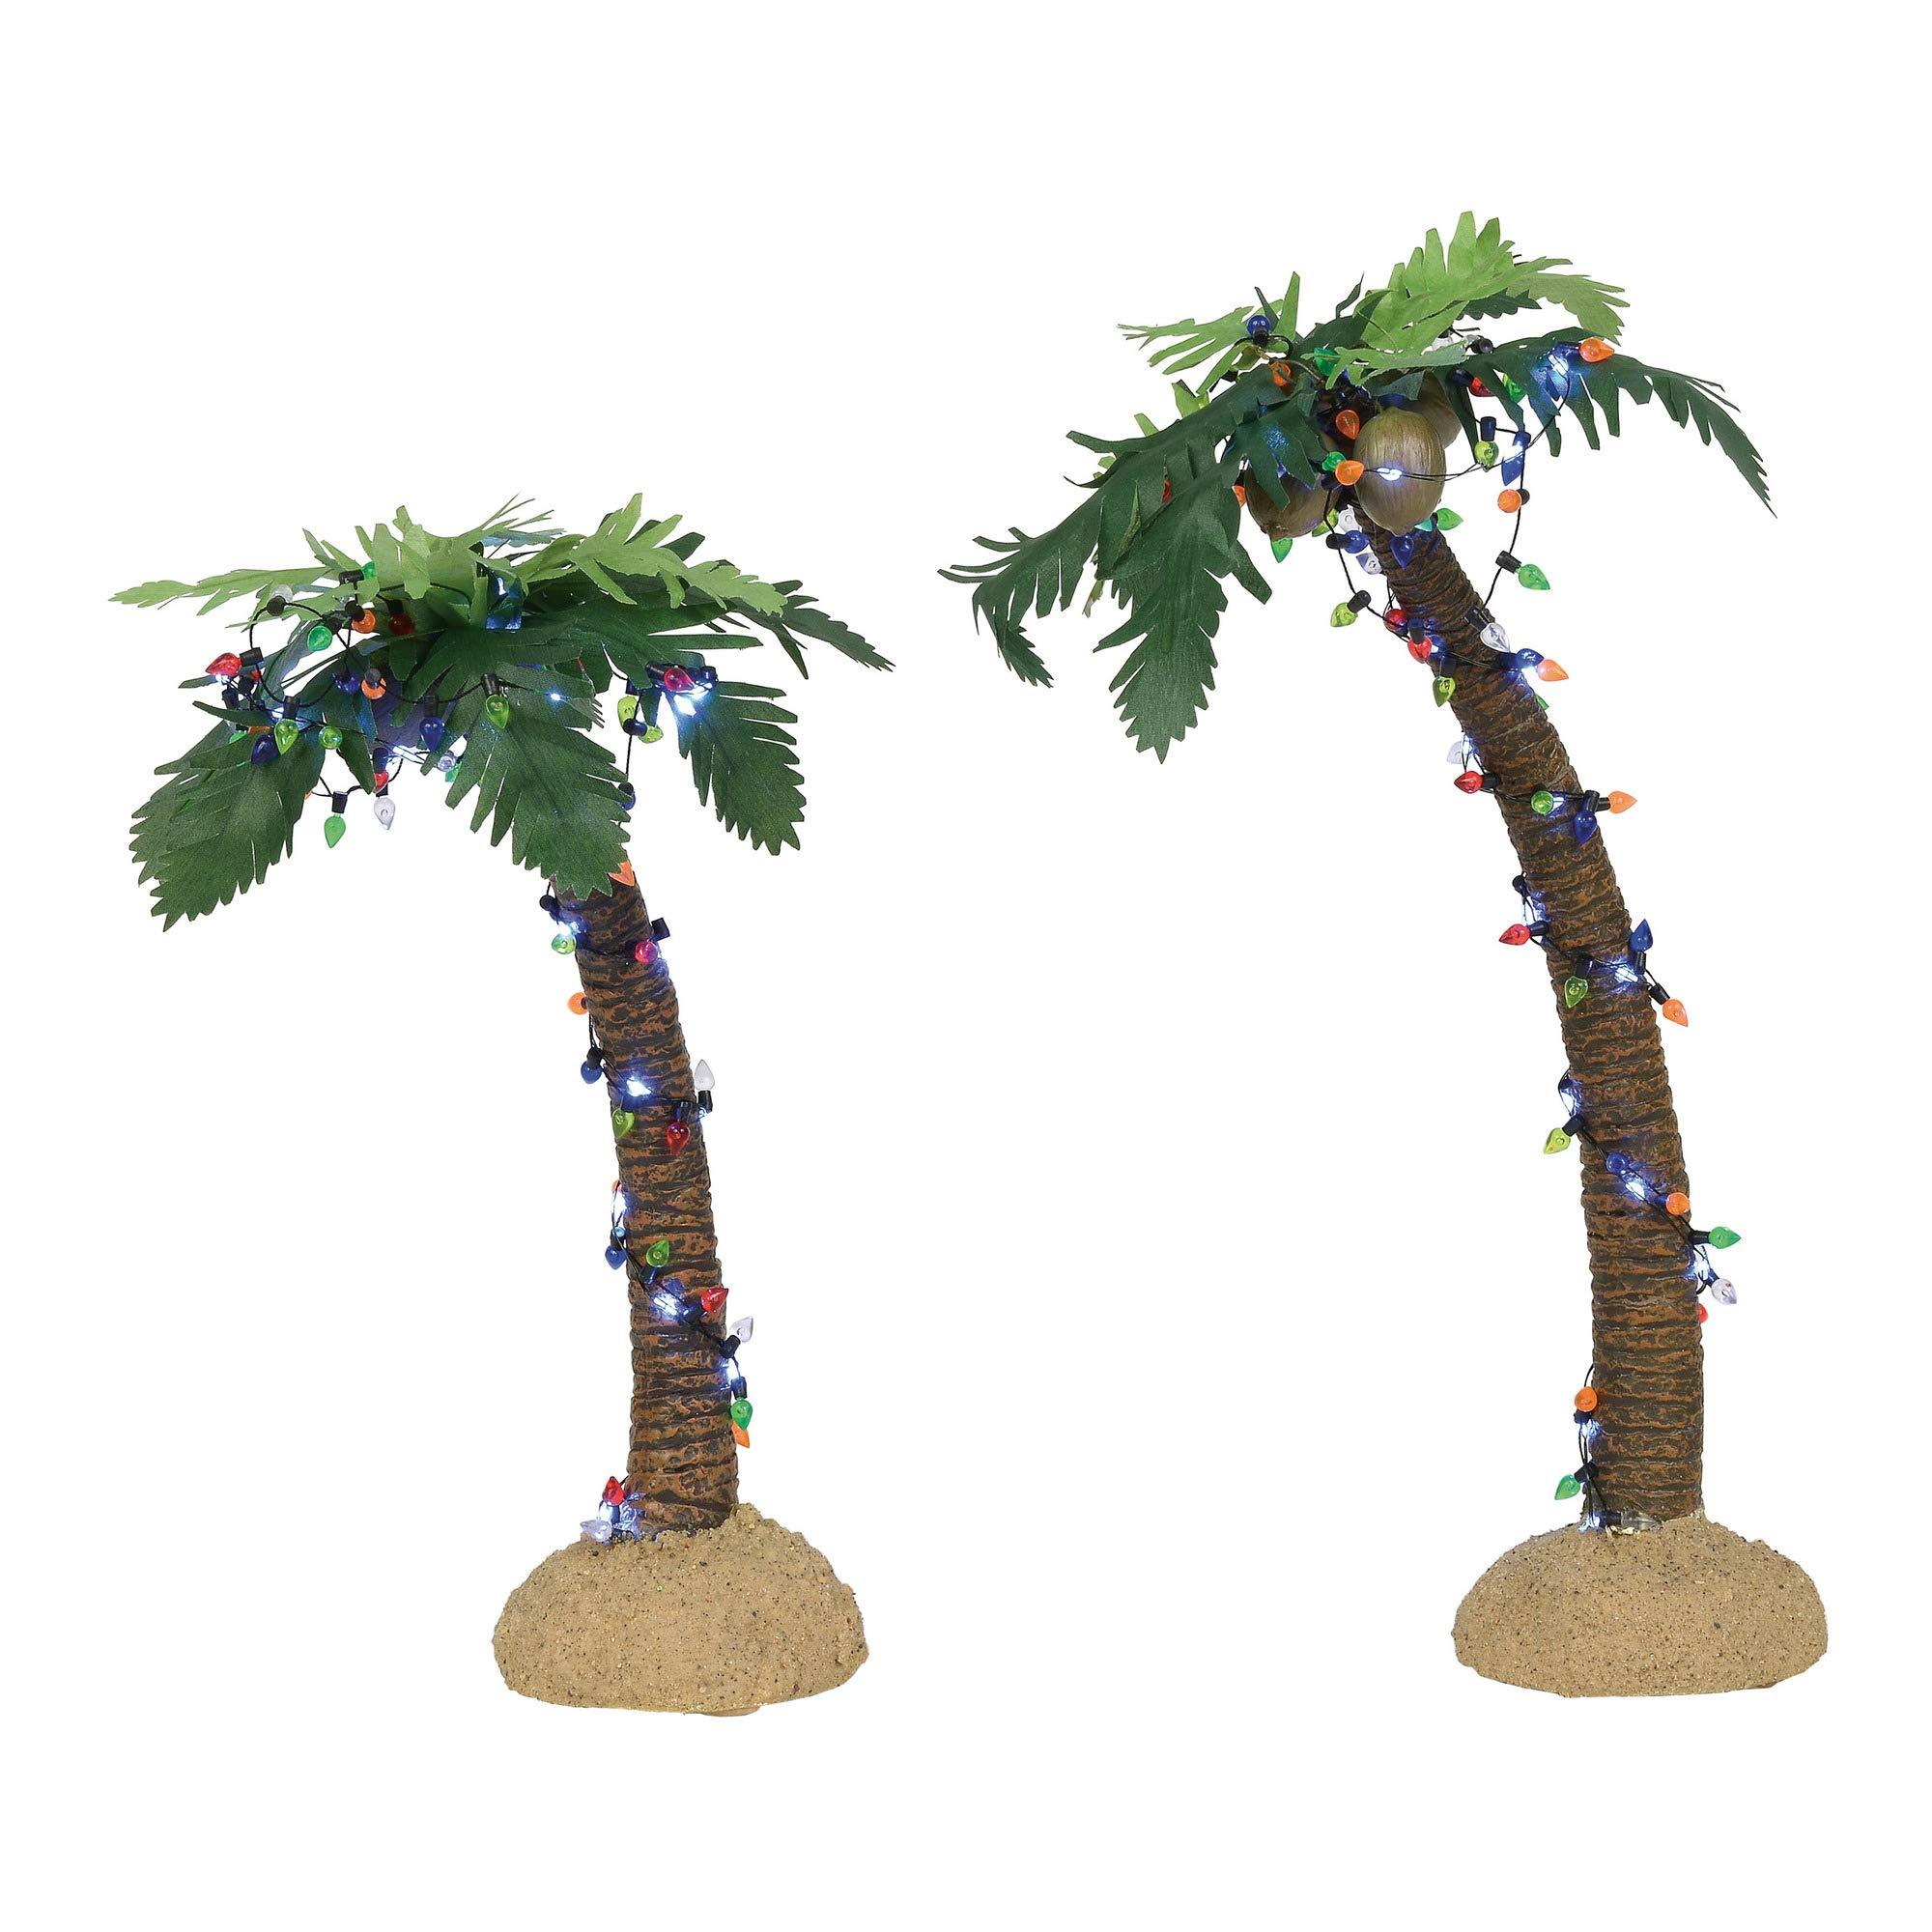 Department 56 Village Cross Product Lit Palm Trees with White Lights Figurine Set, 10.5'' and 12'', Multicolor